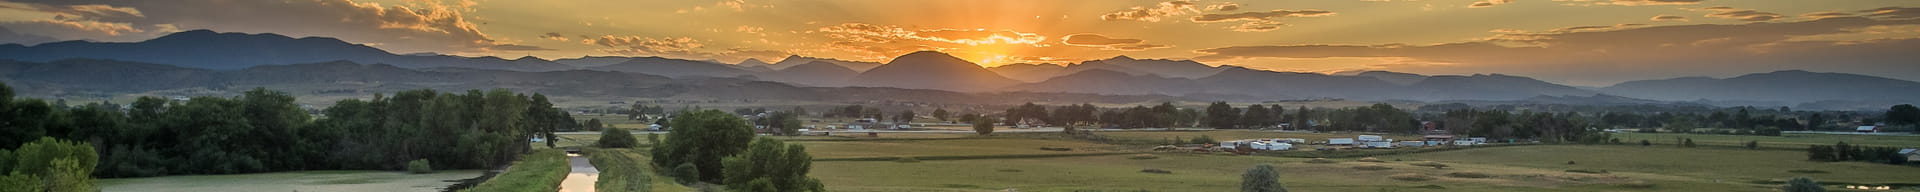 mountain-sunrise-over-rural-farm-town_desktop